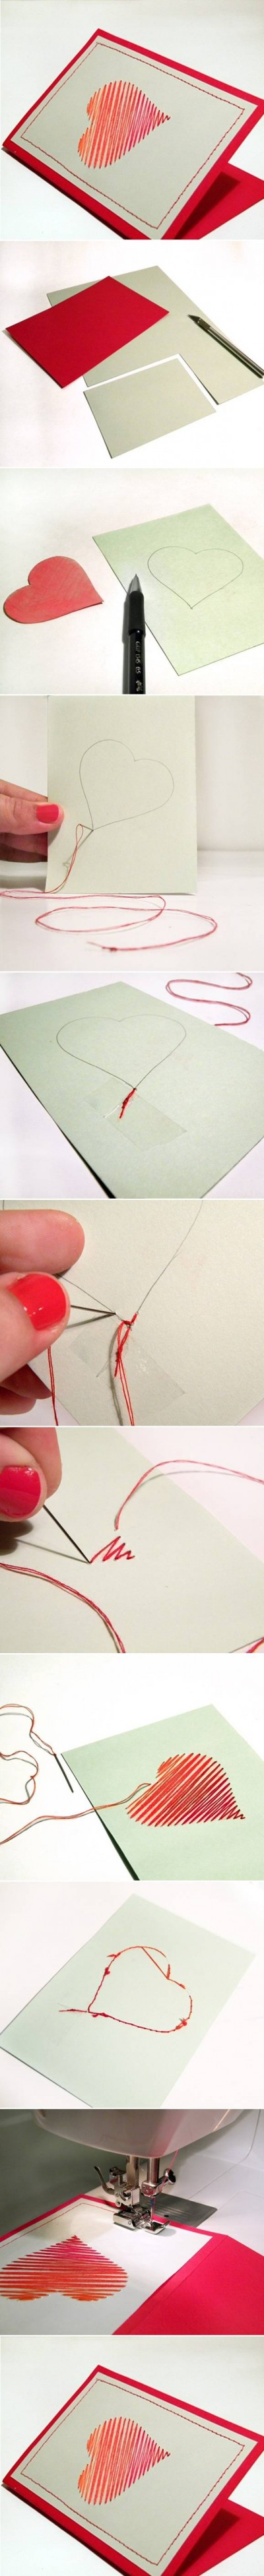 How to make Sew Heart Card step by step DIY tutorial instructions